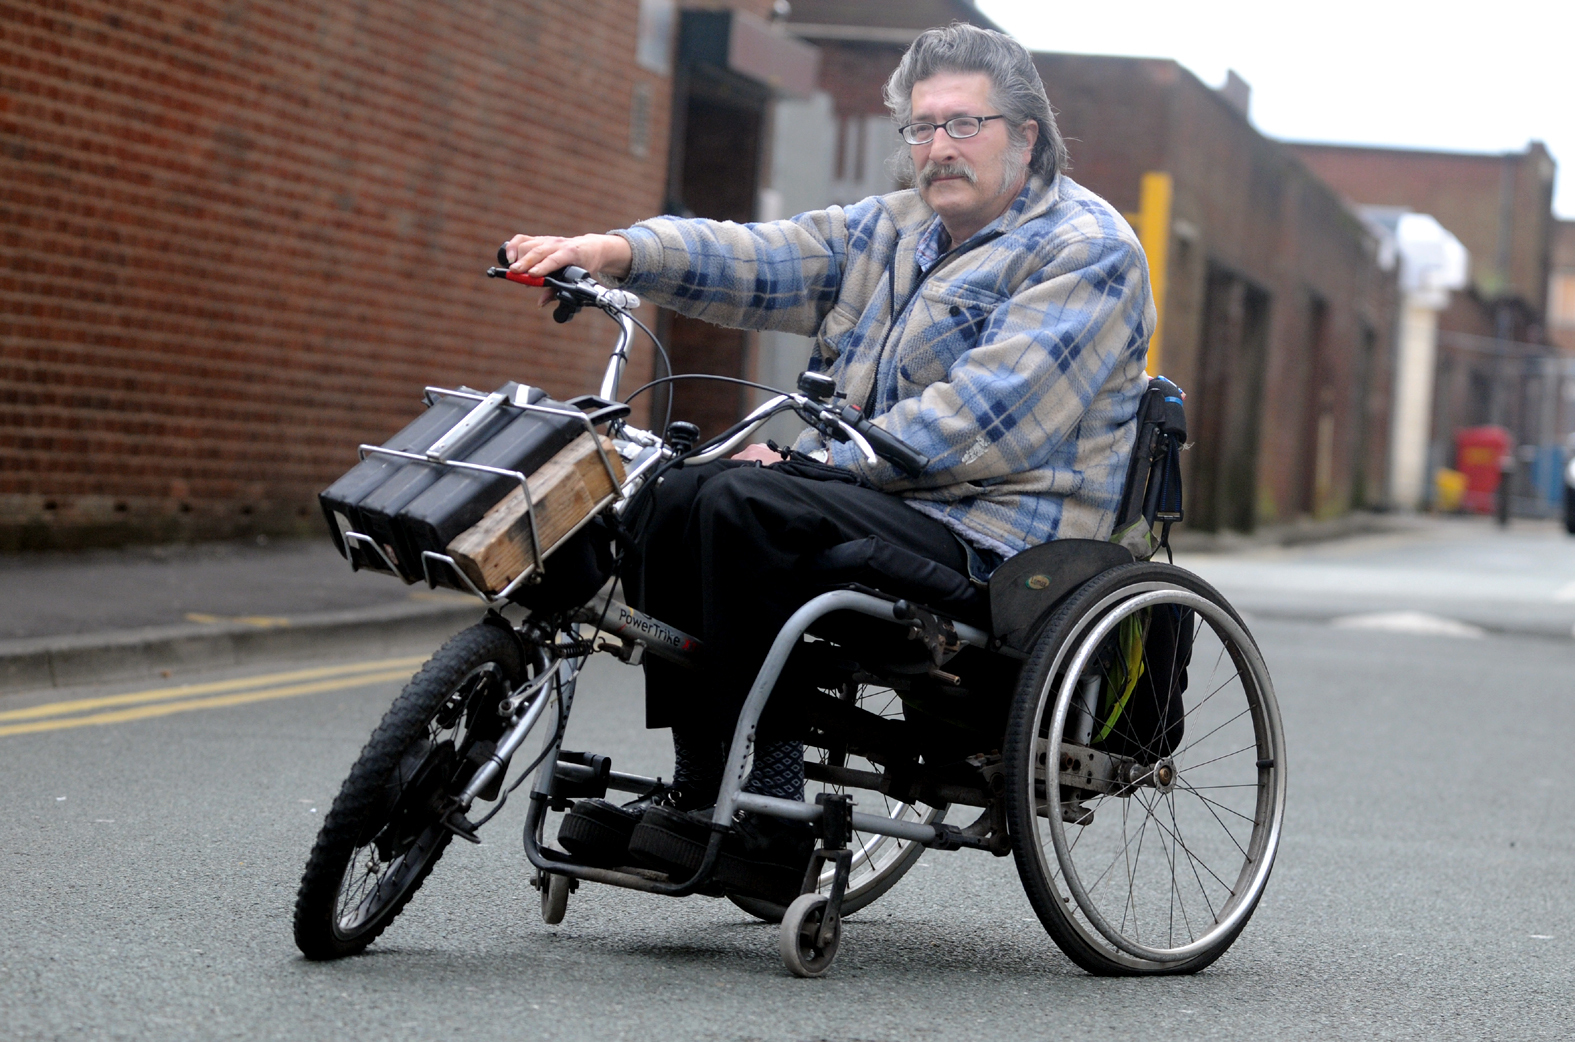 wheelchair man hsl chair accessories disabled caught in limbo after police threaten to seize ronny druckmann on his trike